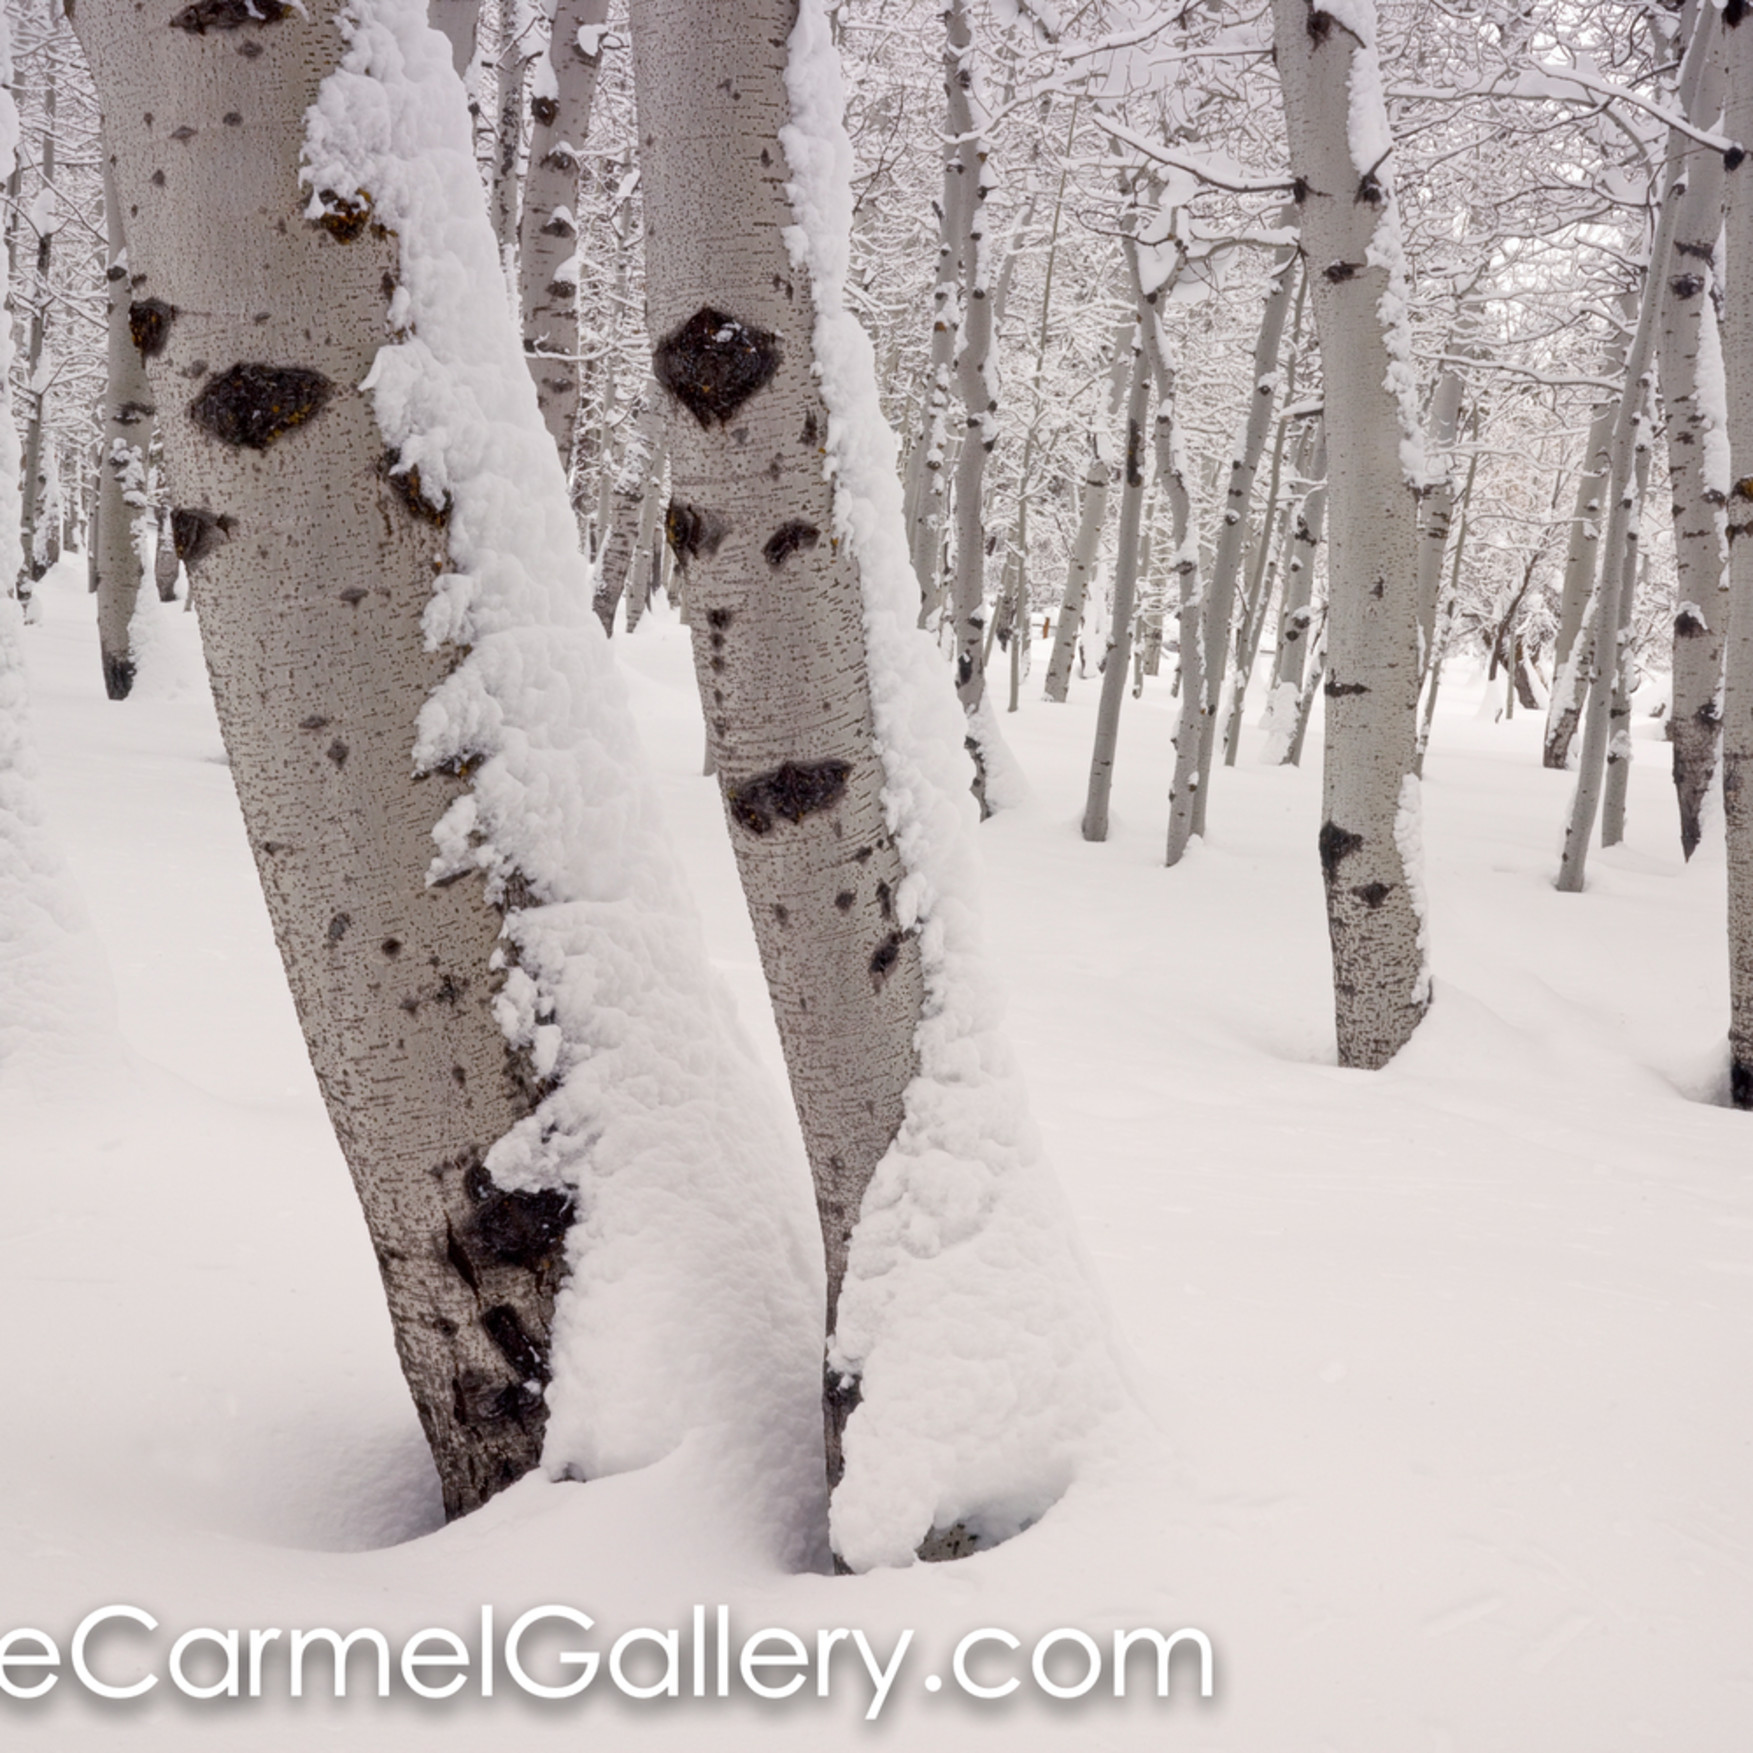 Aspen forest in winter hrhuup